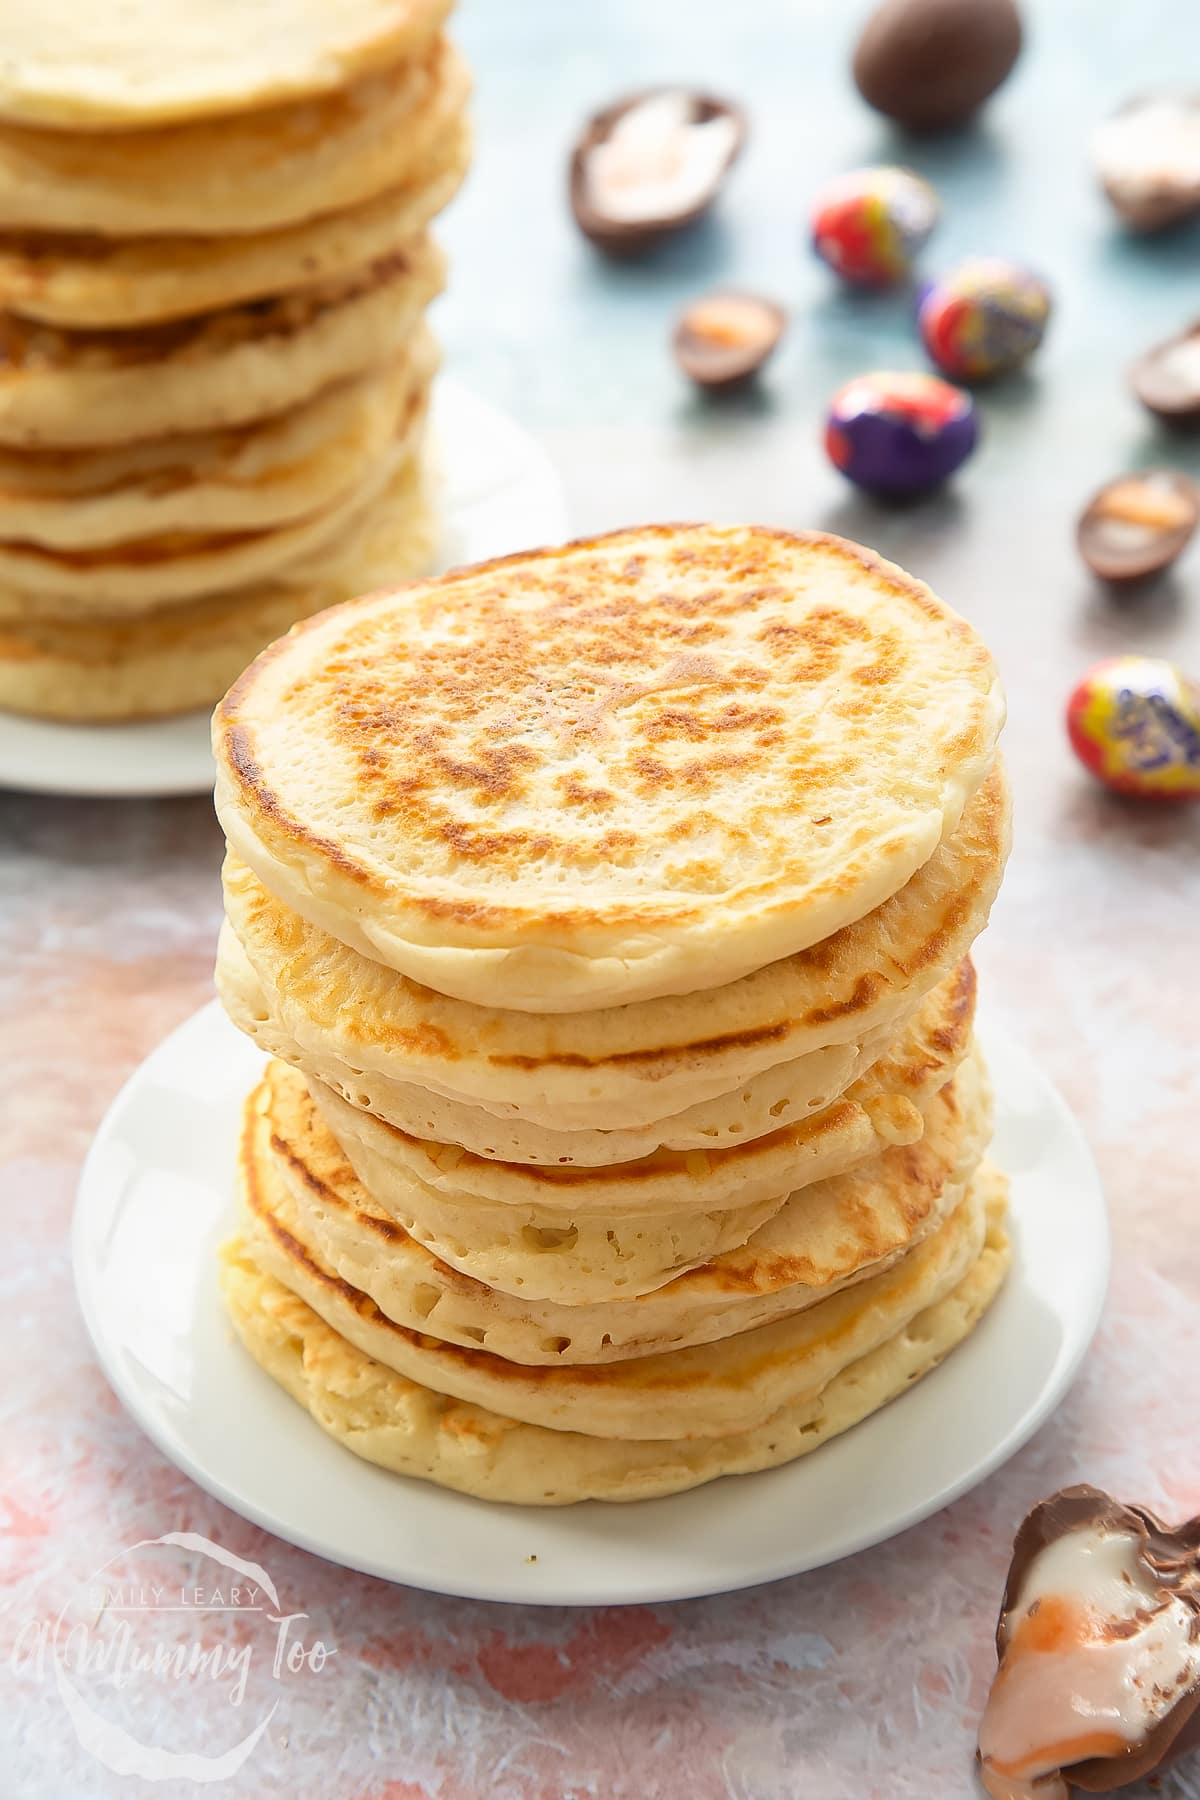 A tall stack of Creme Egg pancakes on a small white plate.